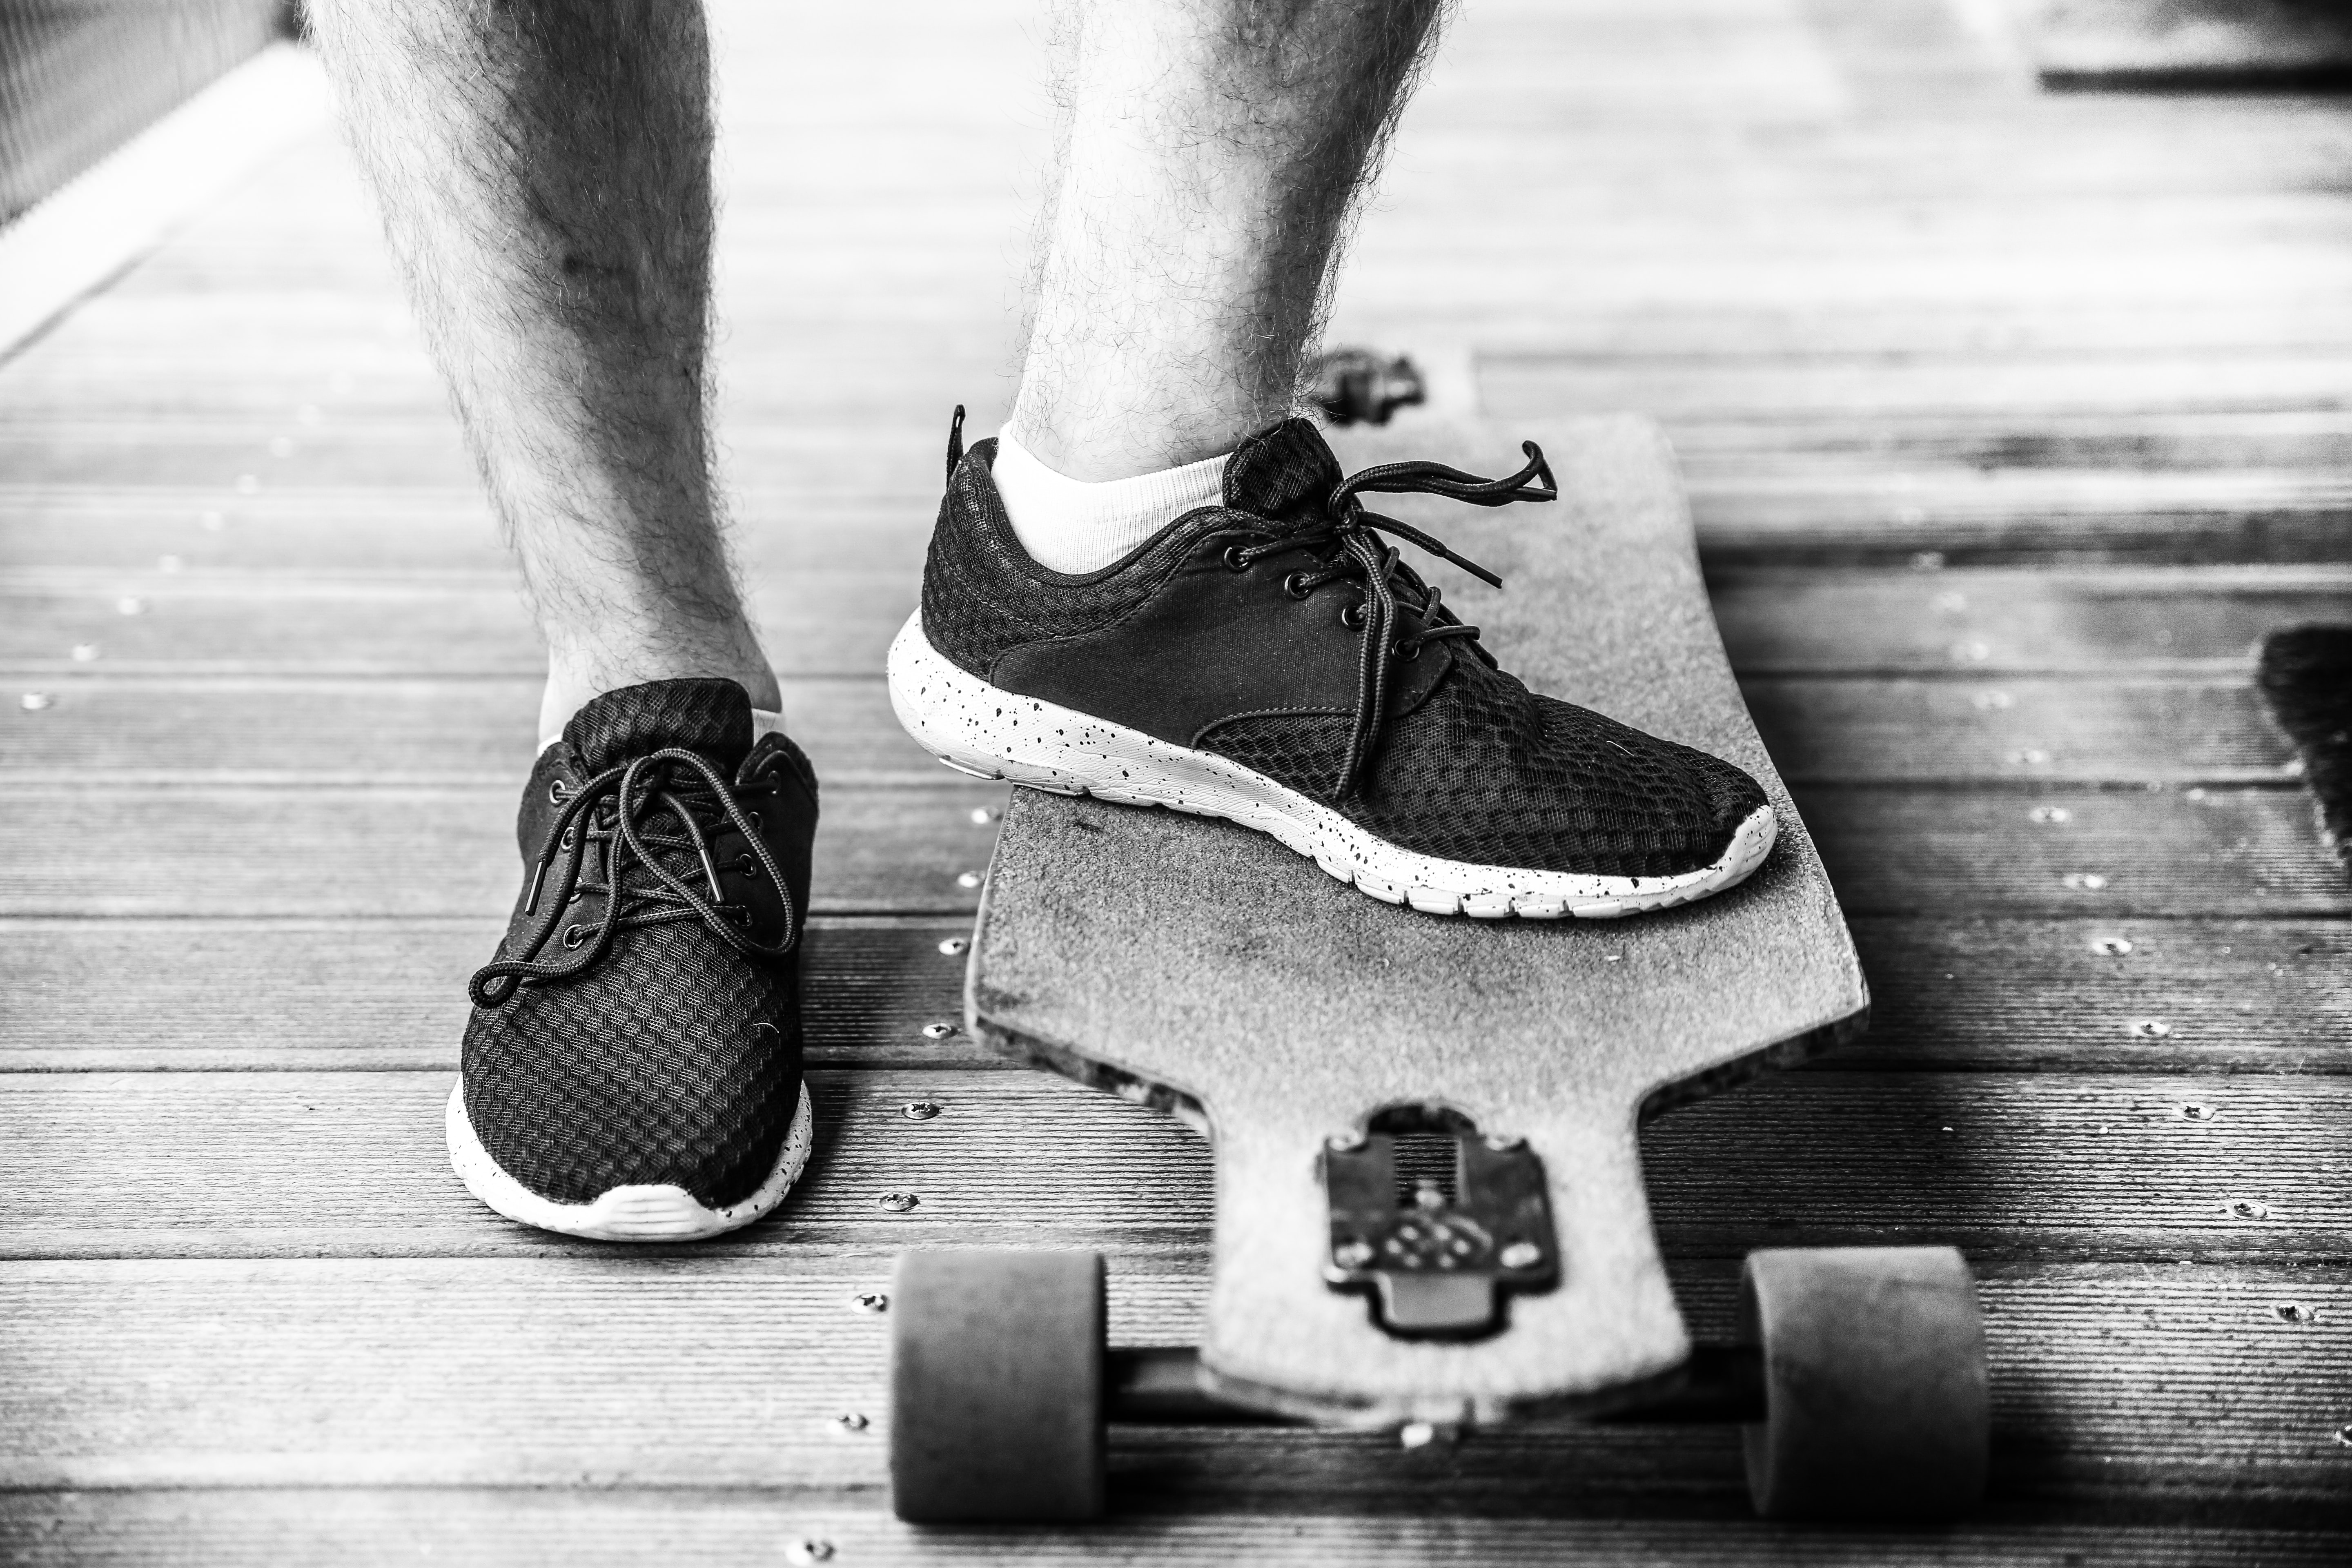 grayscaled photography of person on longboard